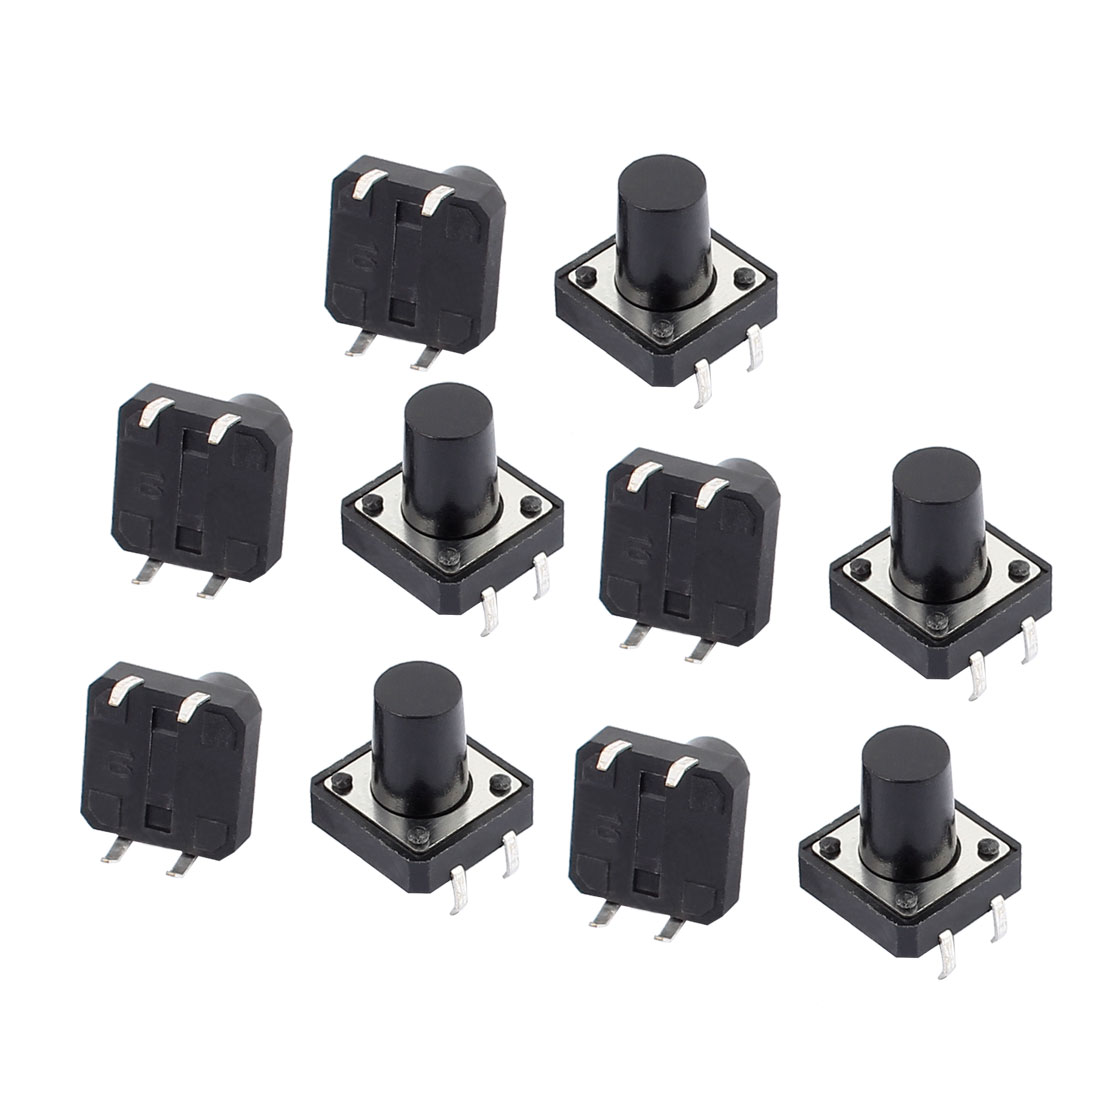 10Pcs 12mmx12mmx12mm Panel PCB Momentary Contact Tactile Tact Switch 4 Terminals